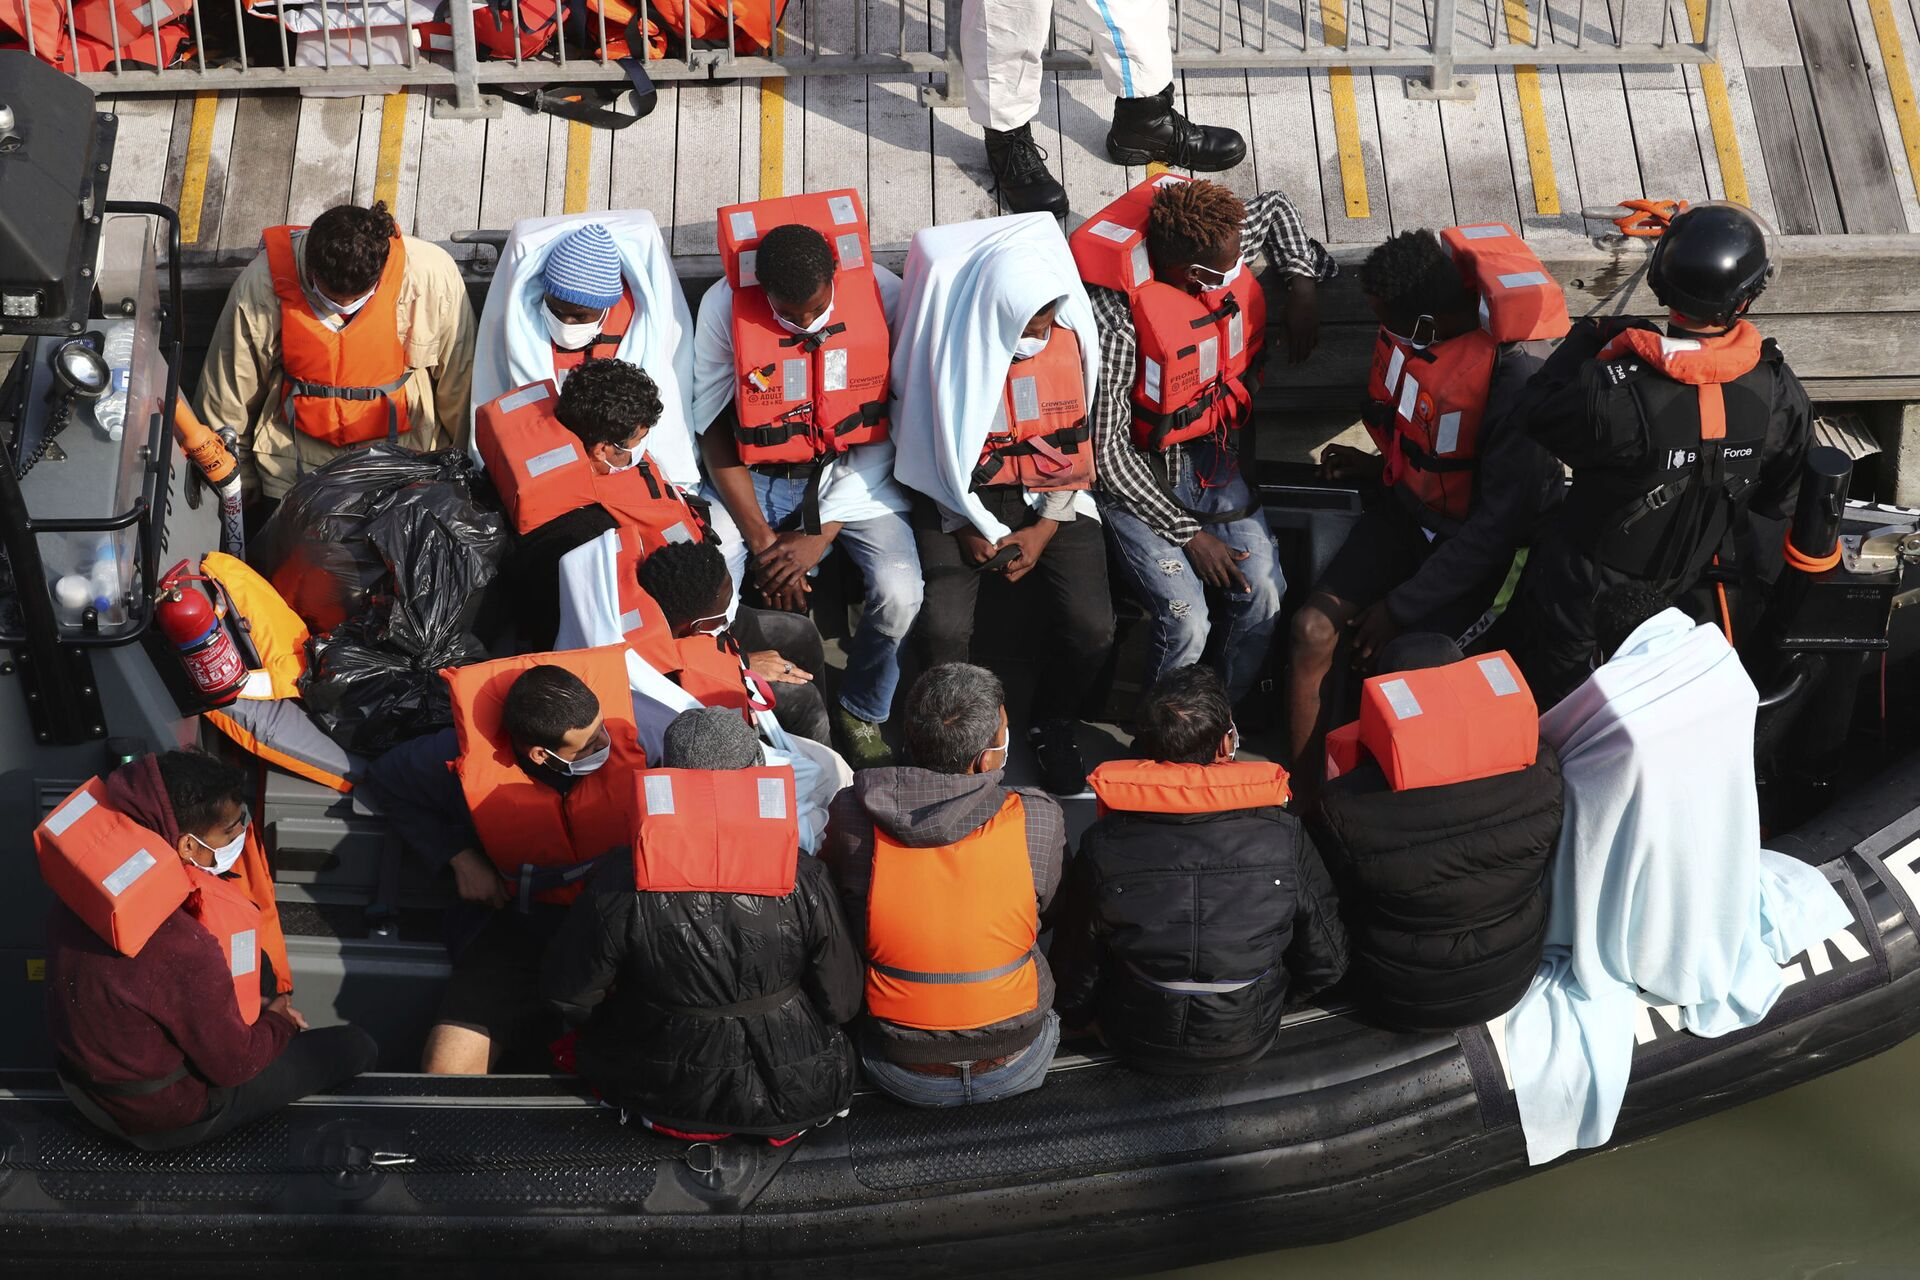 A group of people, thought to be migrants wait on a Border Force rib to come ashore at Dover marina in Kent, England after a small boat incident in the English Channel, Tuesday Sept. 22, 2020.  - Sputnik International, 1920, 07.09.2021